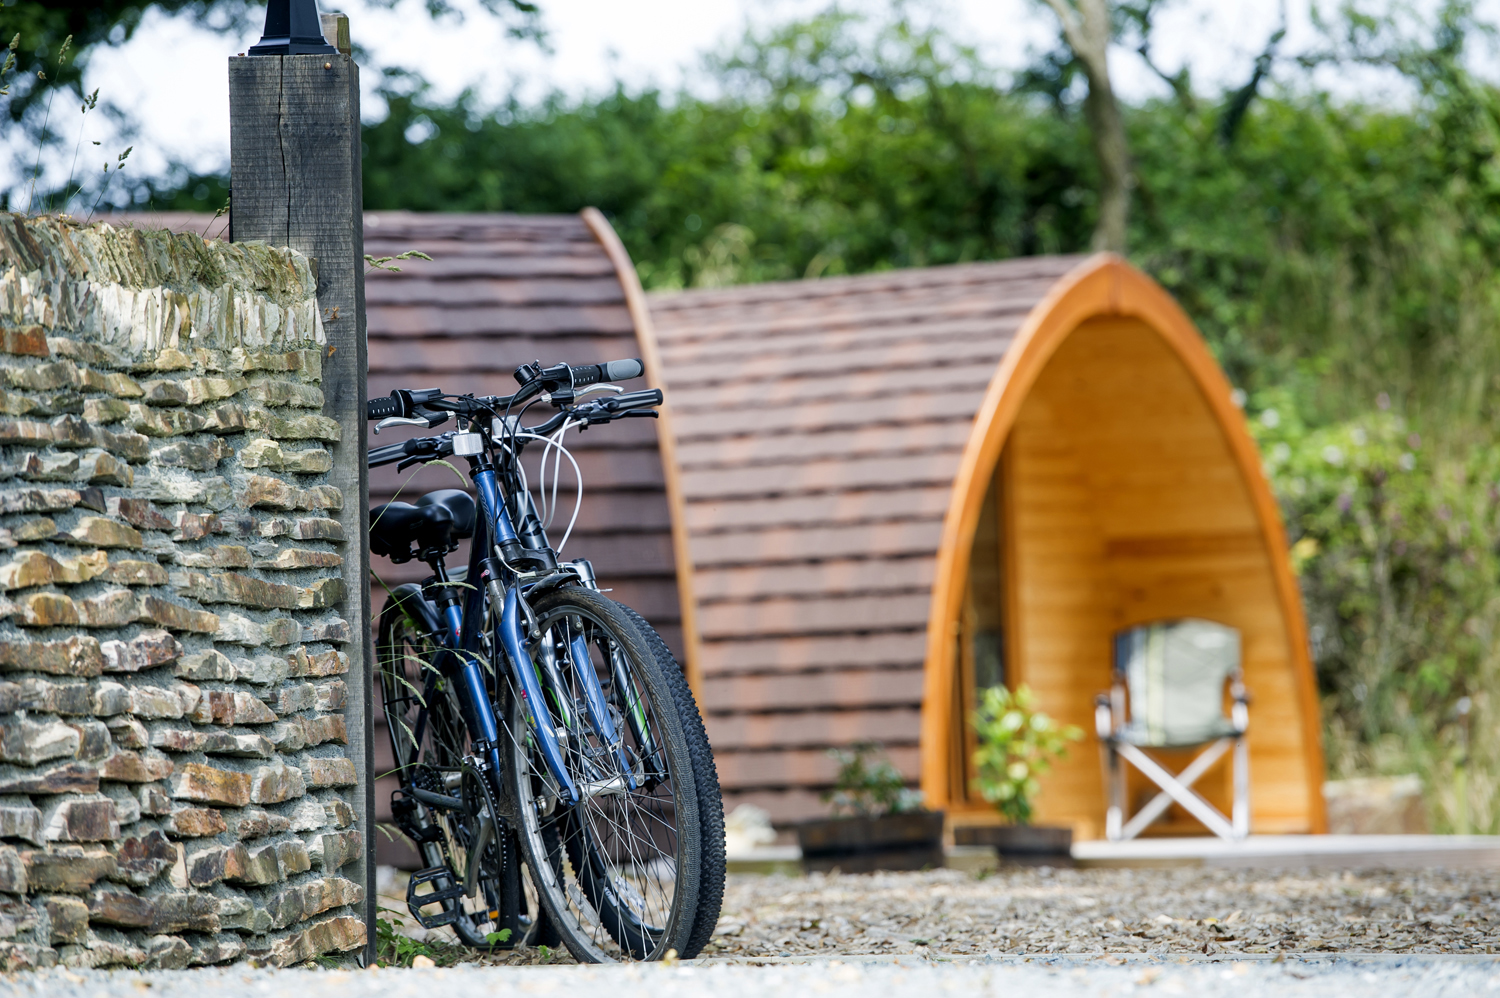 Luxury Quarry Pods at Dunsdon Farm, Devon